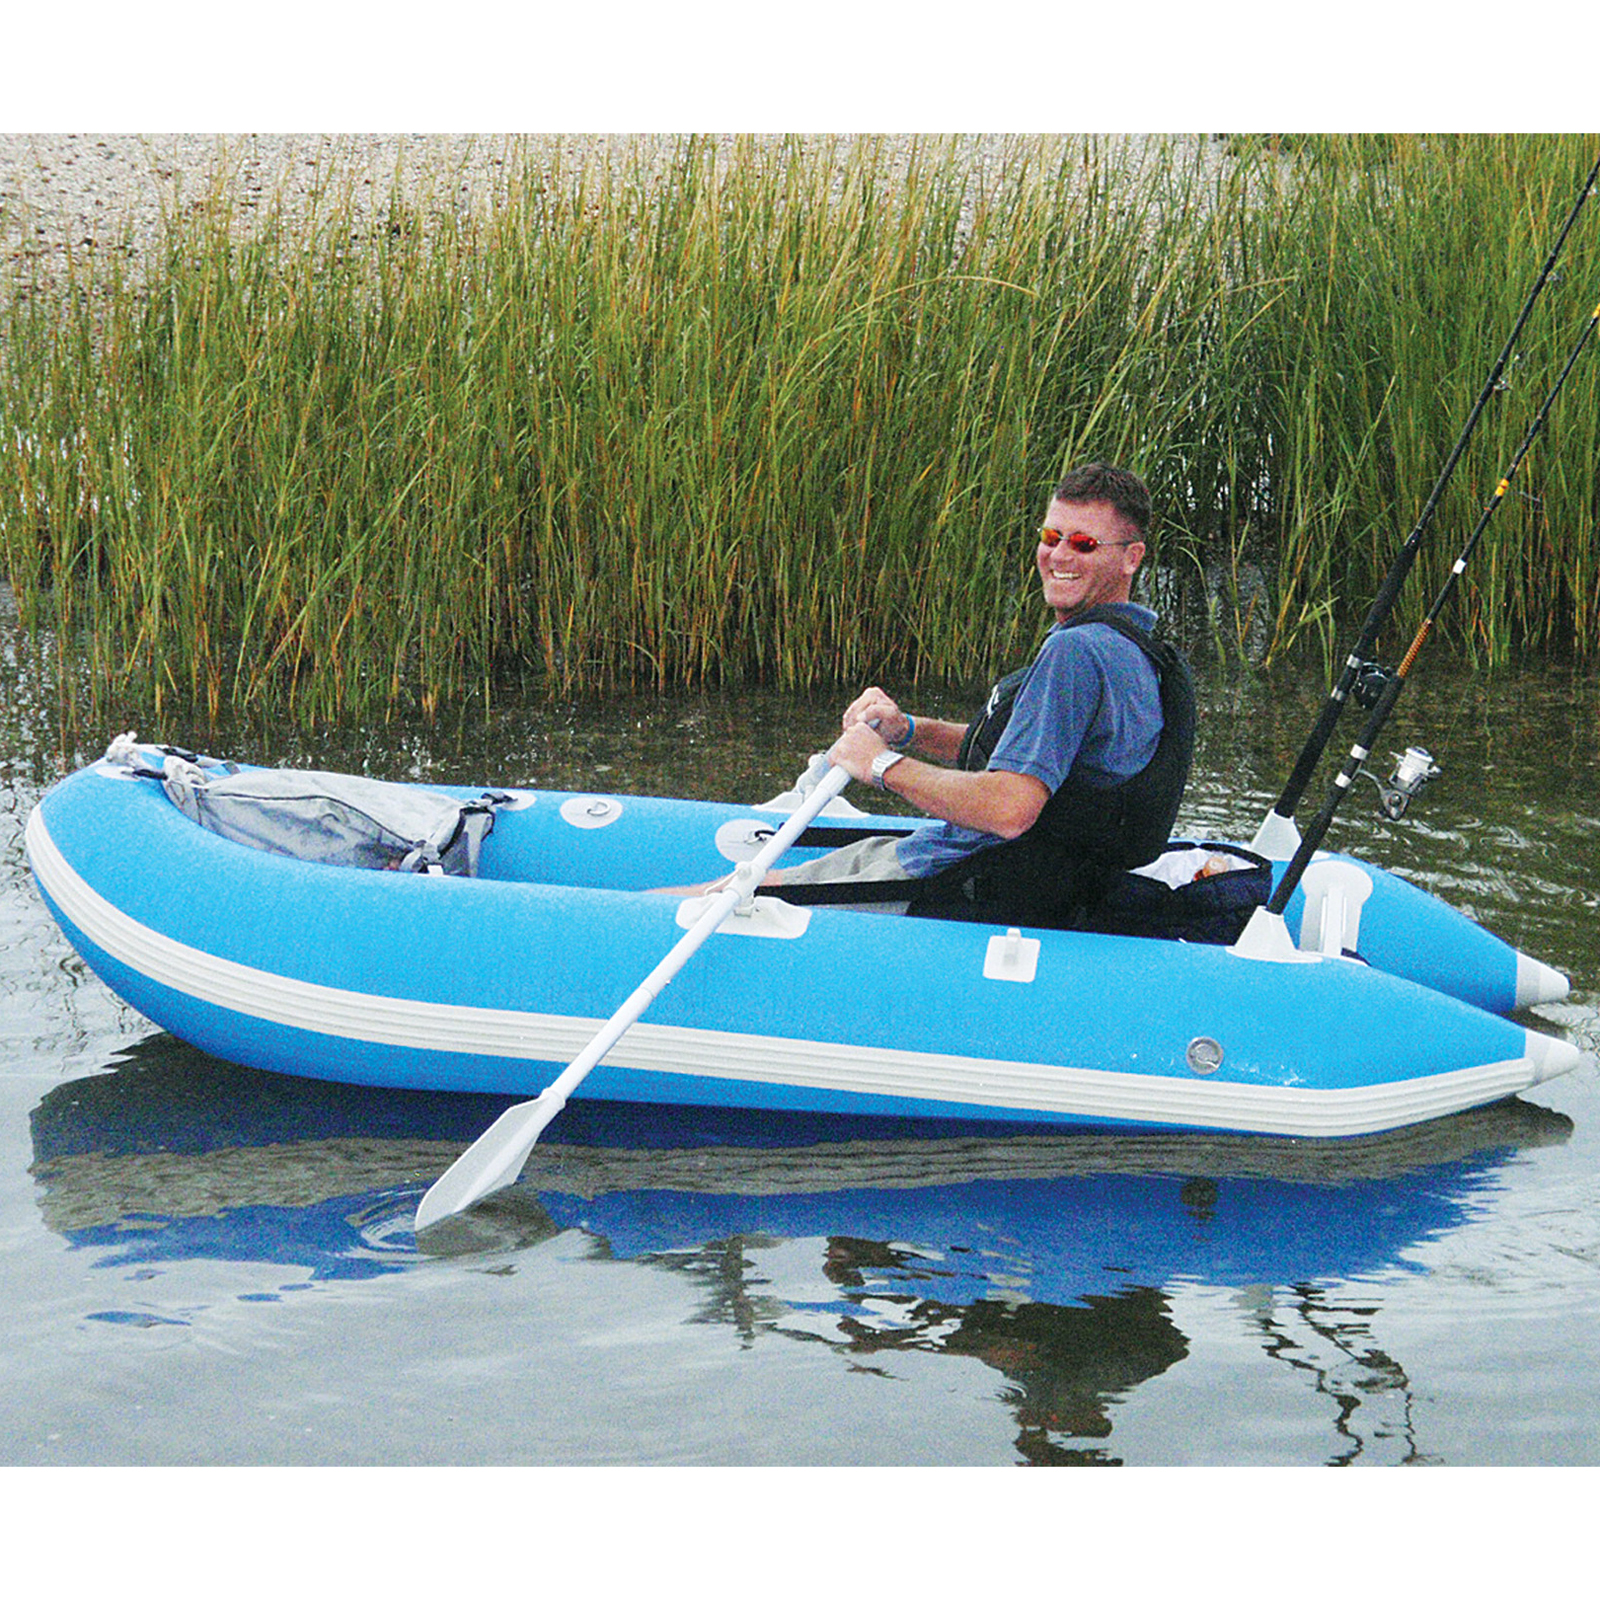 Solstice outcat catamaran inflatable 1 person fishing boat for One man fishing boat